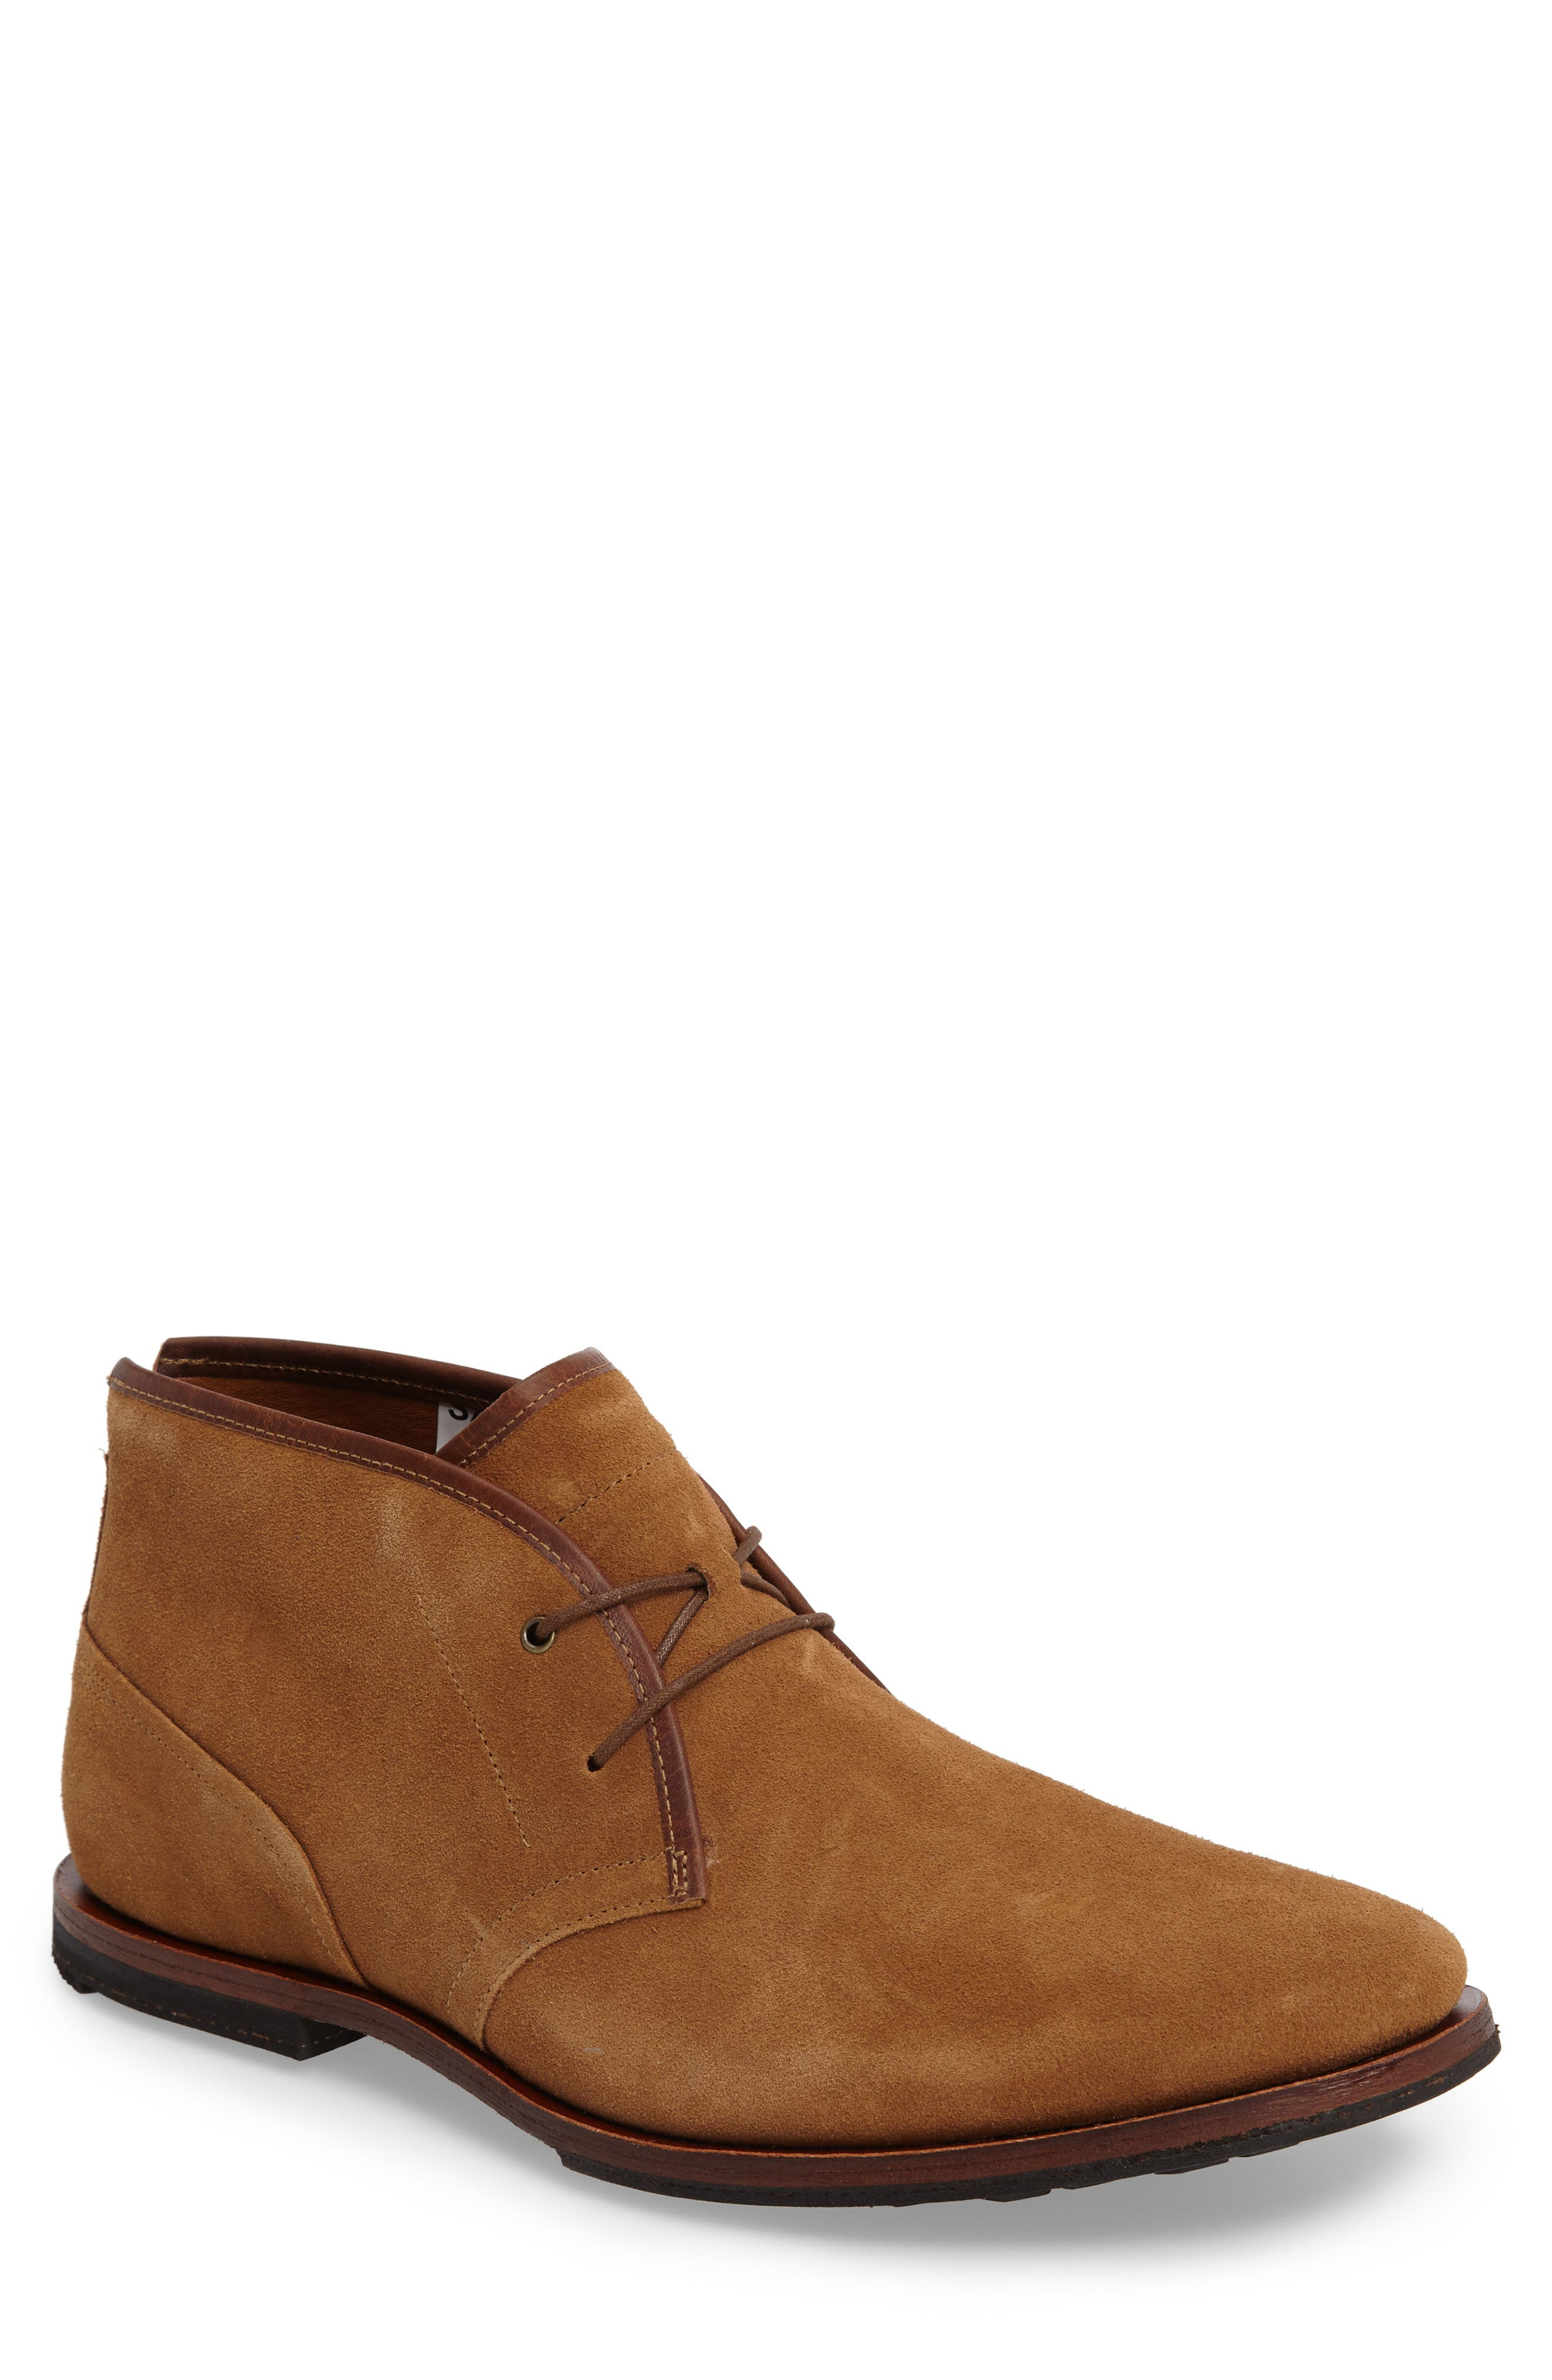 Wodehouse Lost History Chukka Boot,                             Main thumbnail 1, color,                             Rust Suede